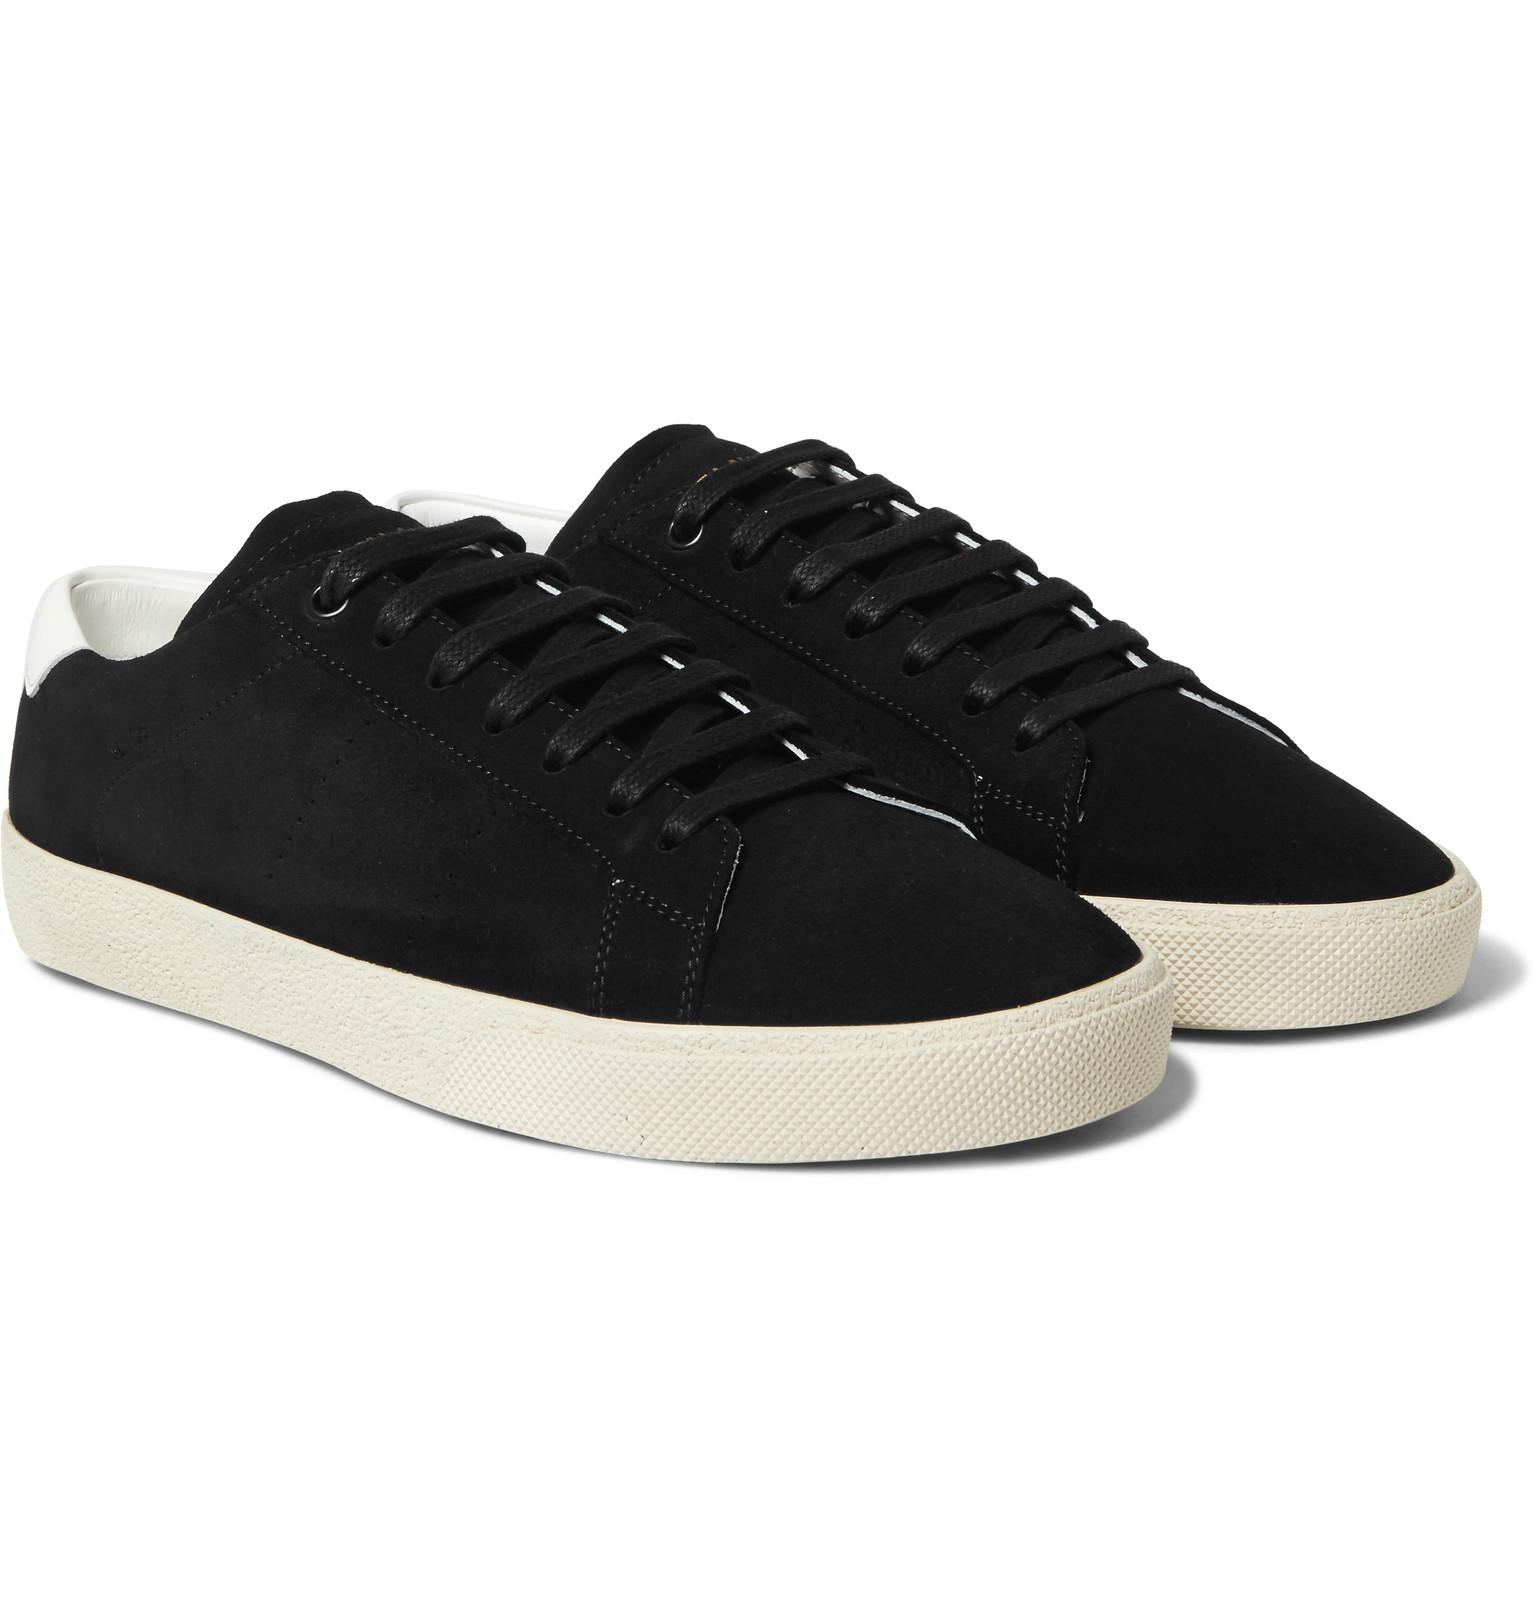 Court Trimmed Lyst Laurent Leather Sl06 Saint Suede Classic tAWpwqFSU